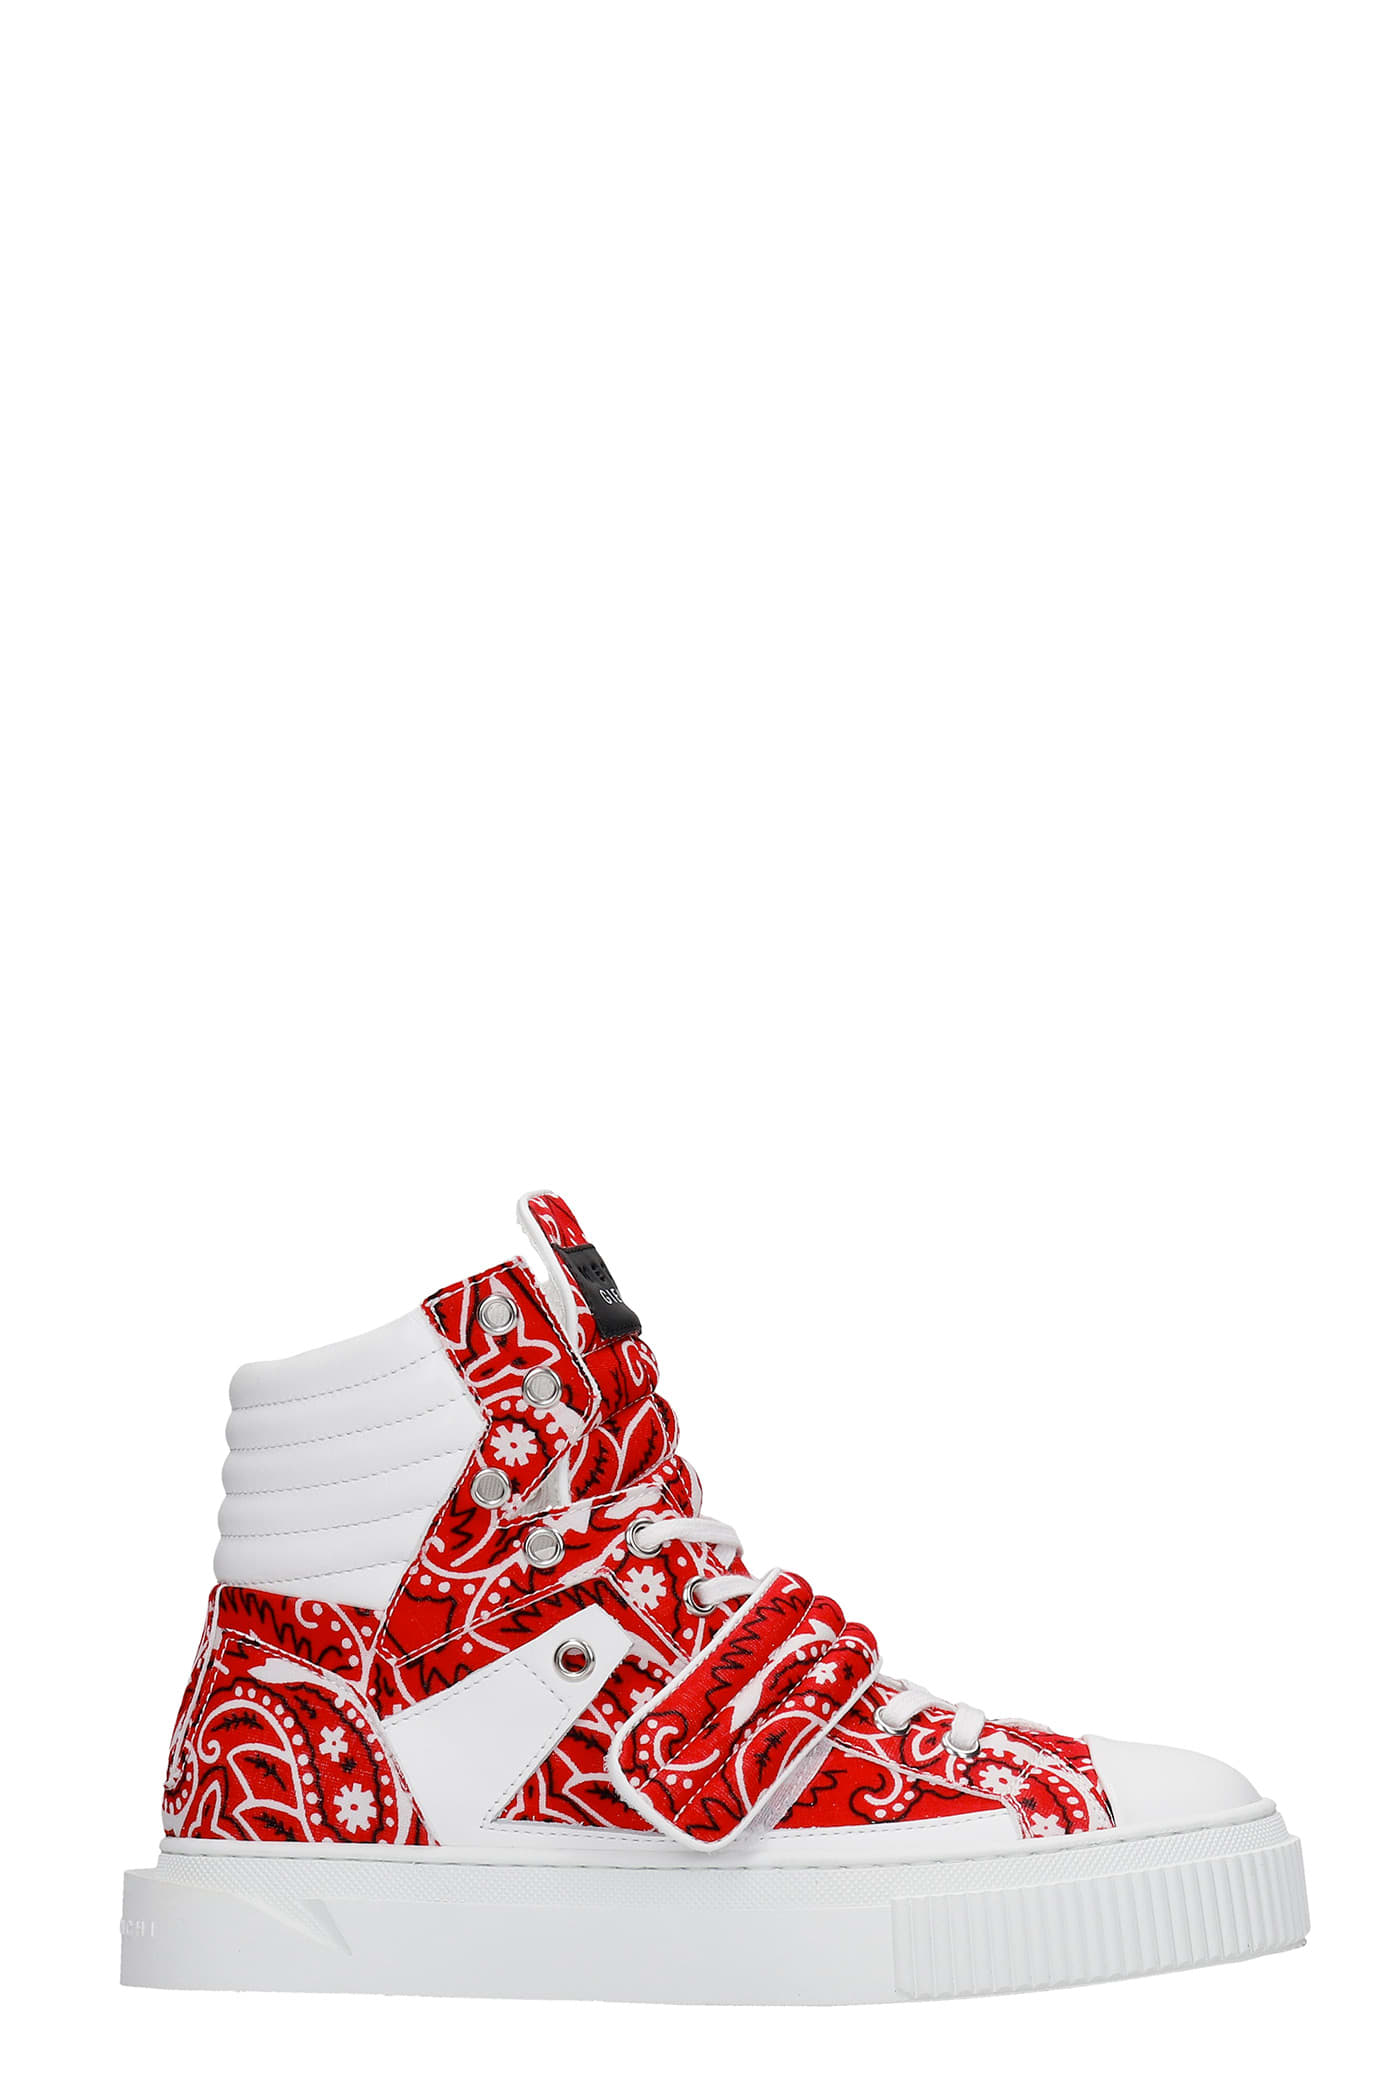 Hypnos Sneakers In Red Leather And Fabric